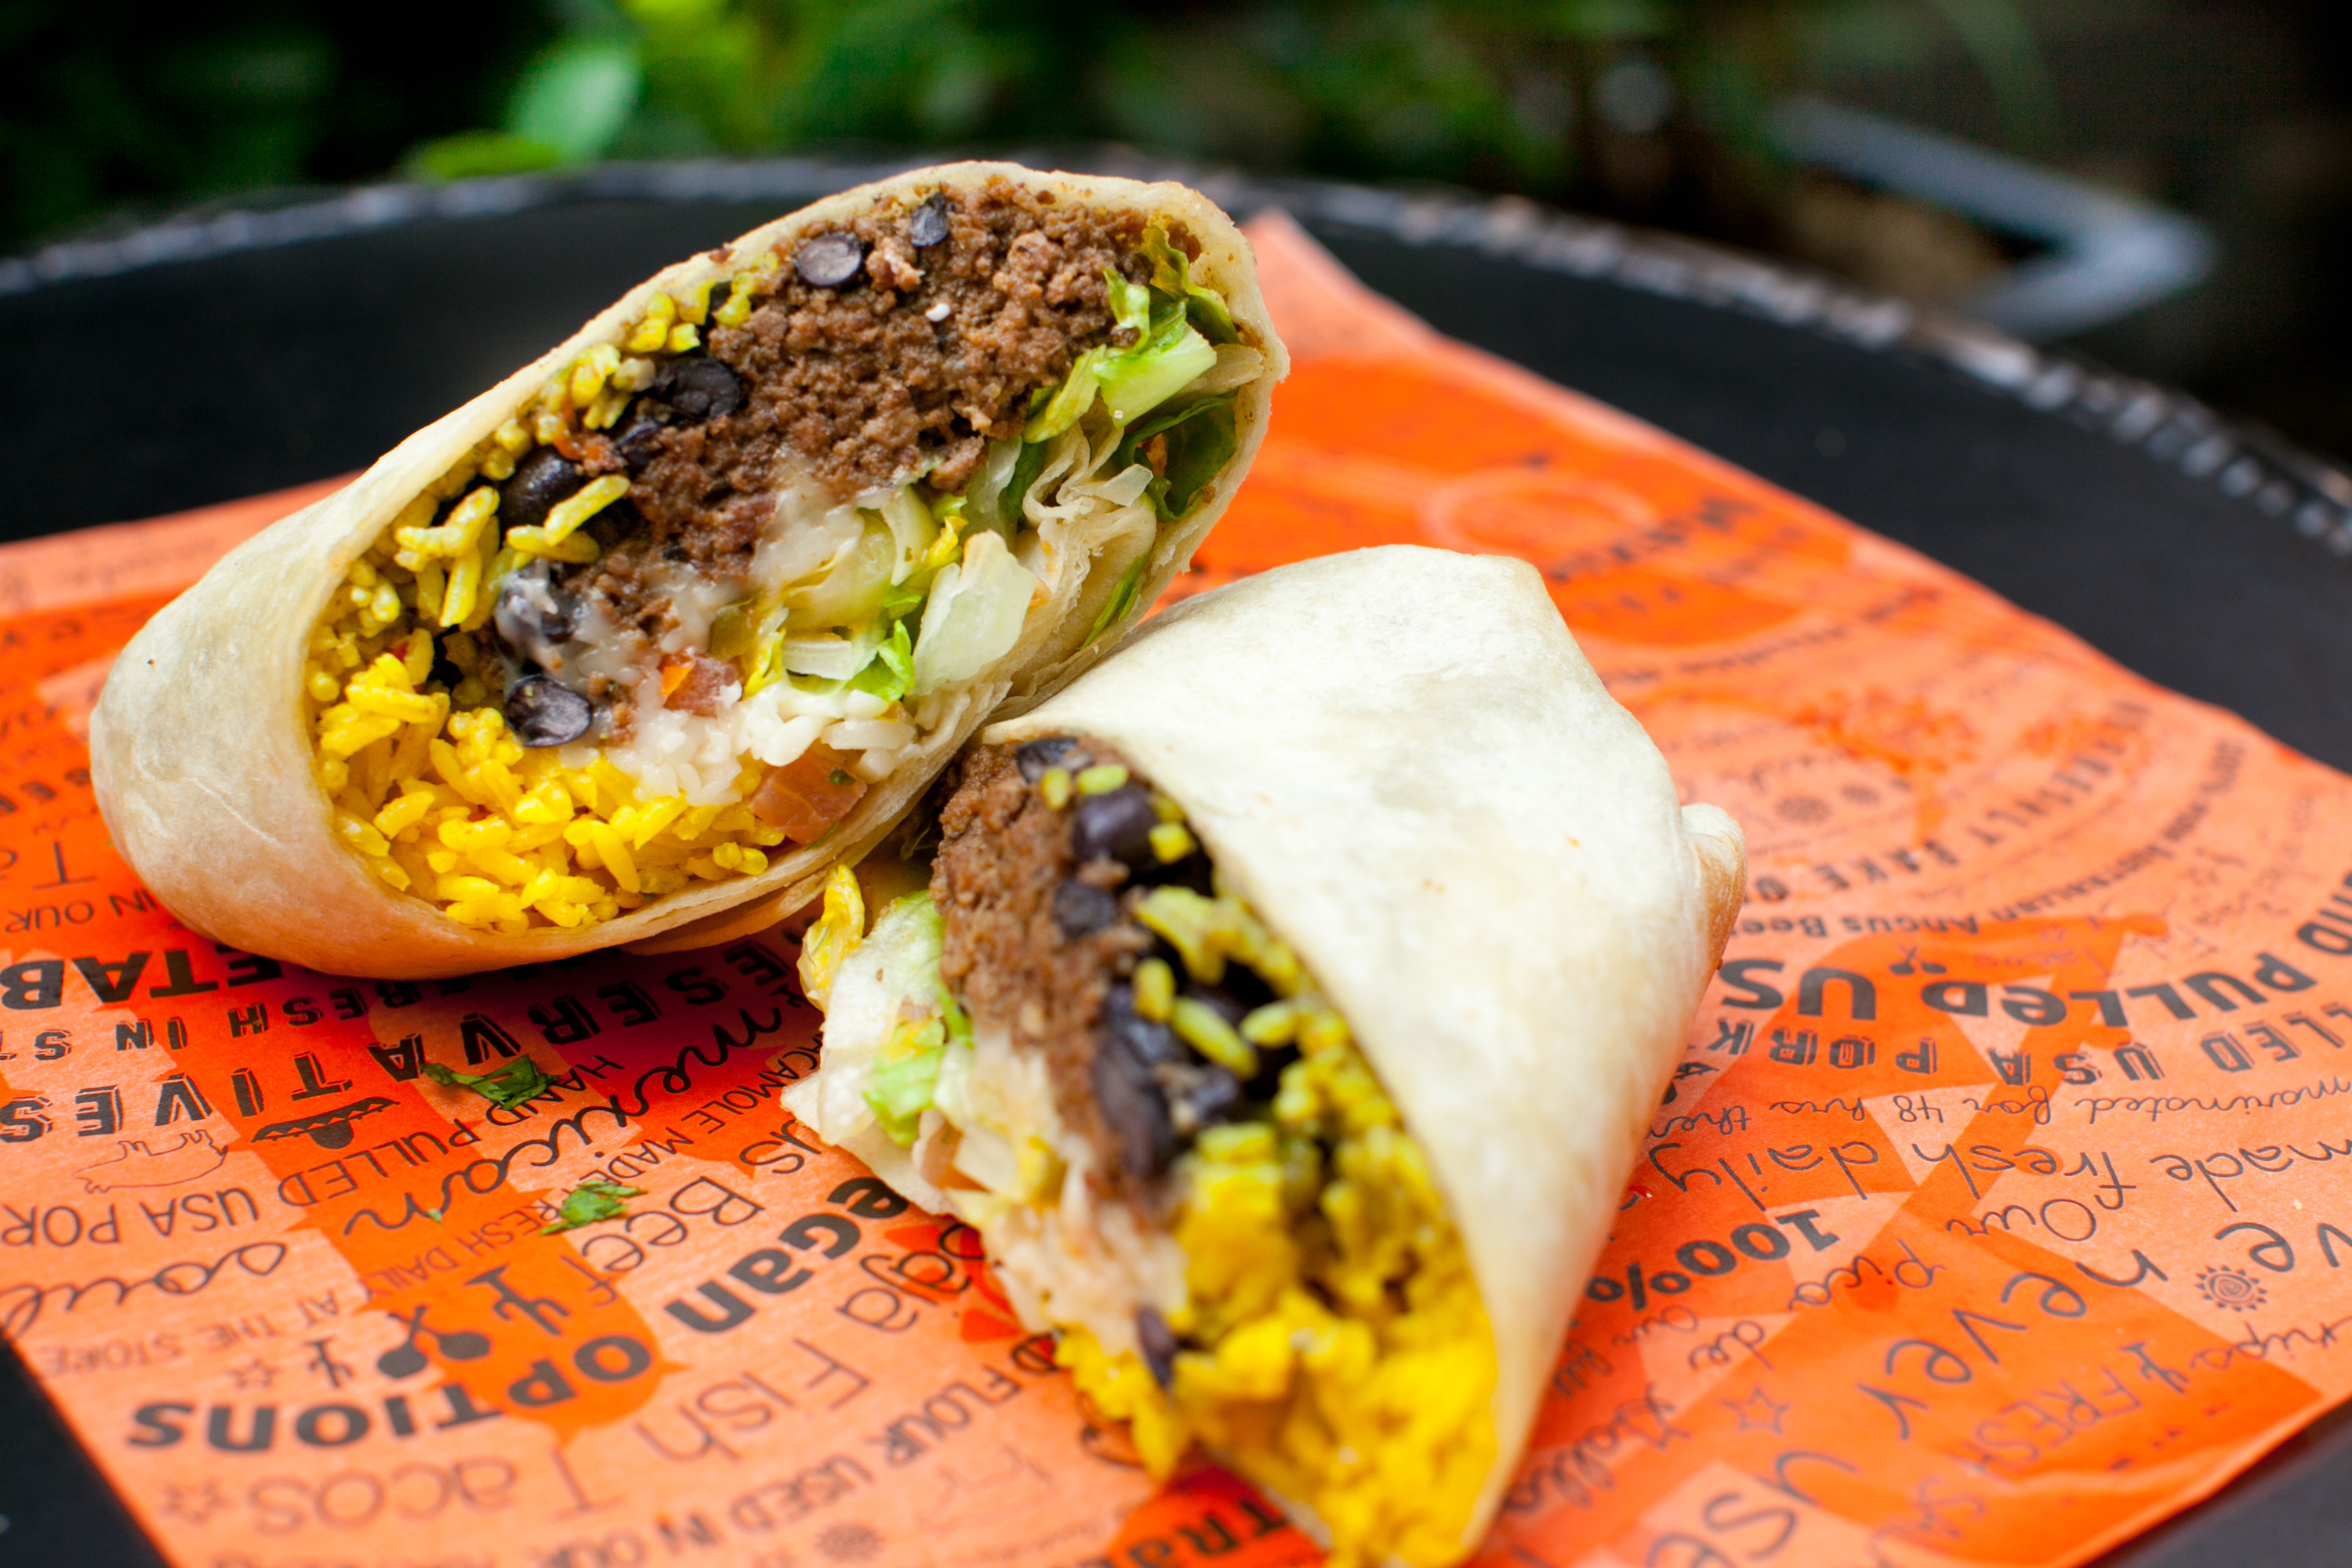 Cali-Mex is giving away free burritos on July 4